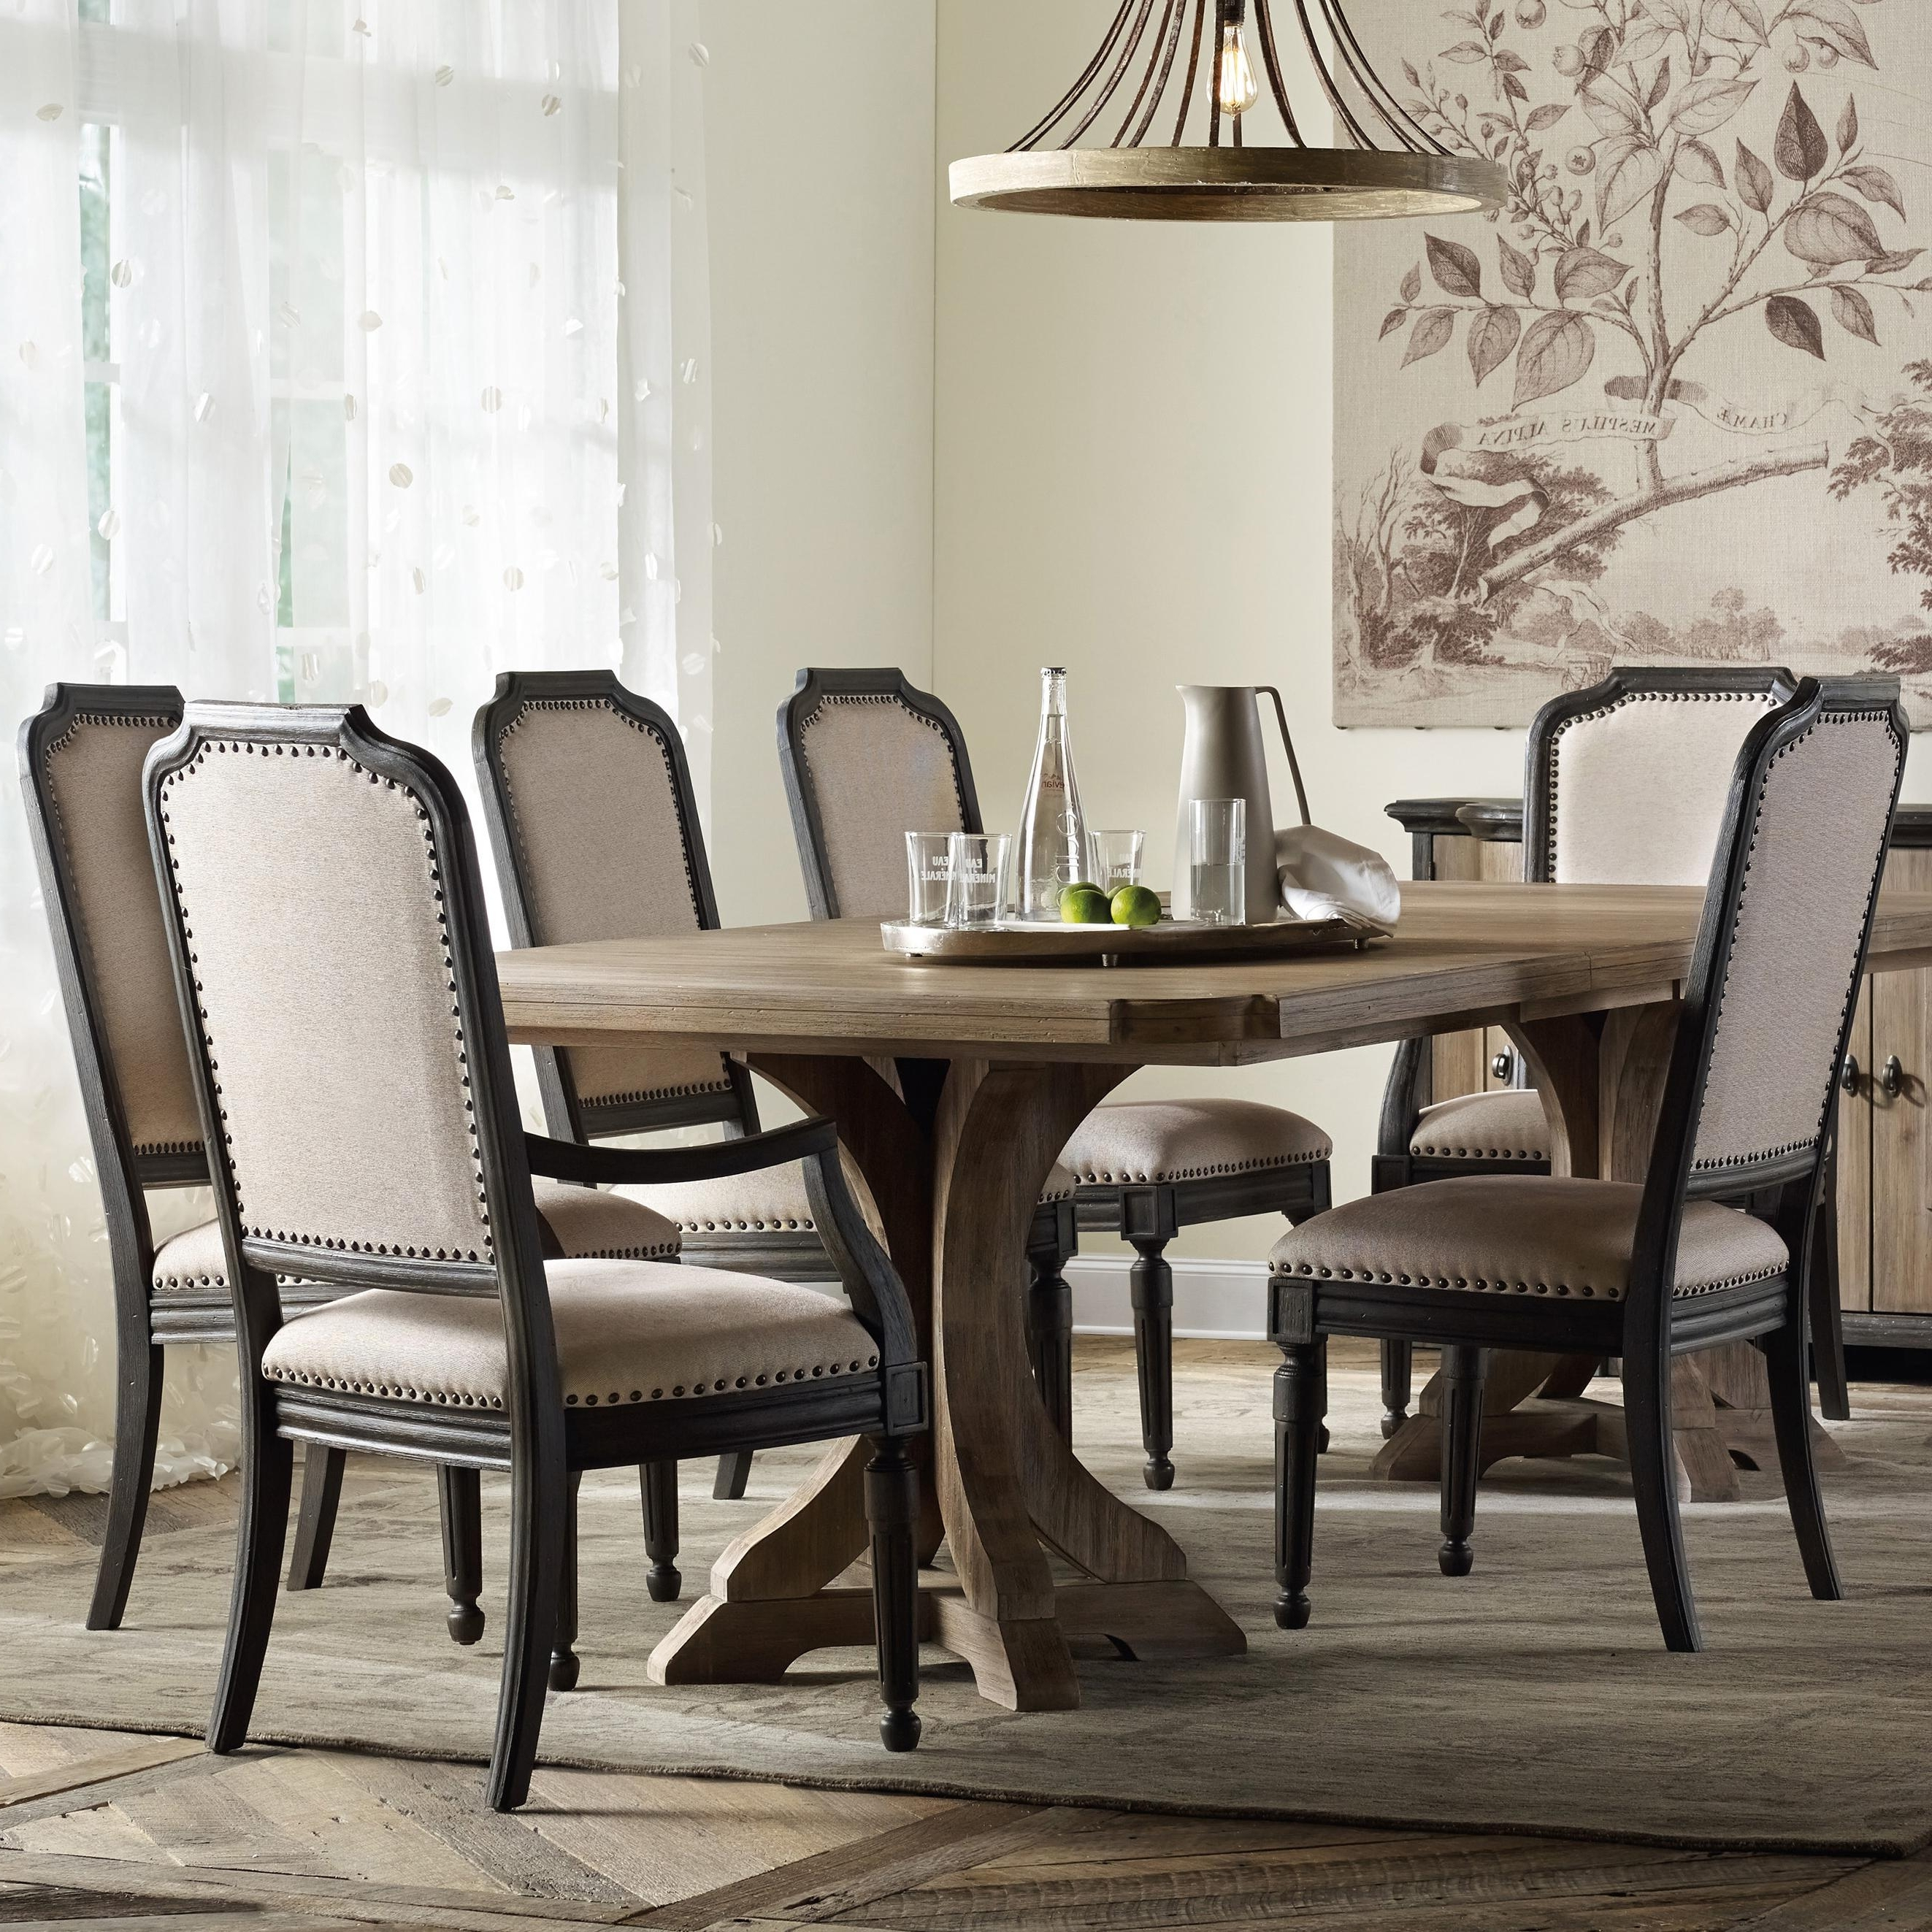 Hamilton Dining Tables With Regard To Current Hamilton Home Corsica Rectangle Pedestal Dining Table Set With (View 16 of 25)